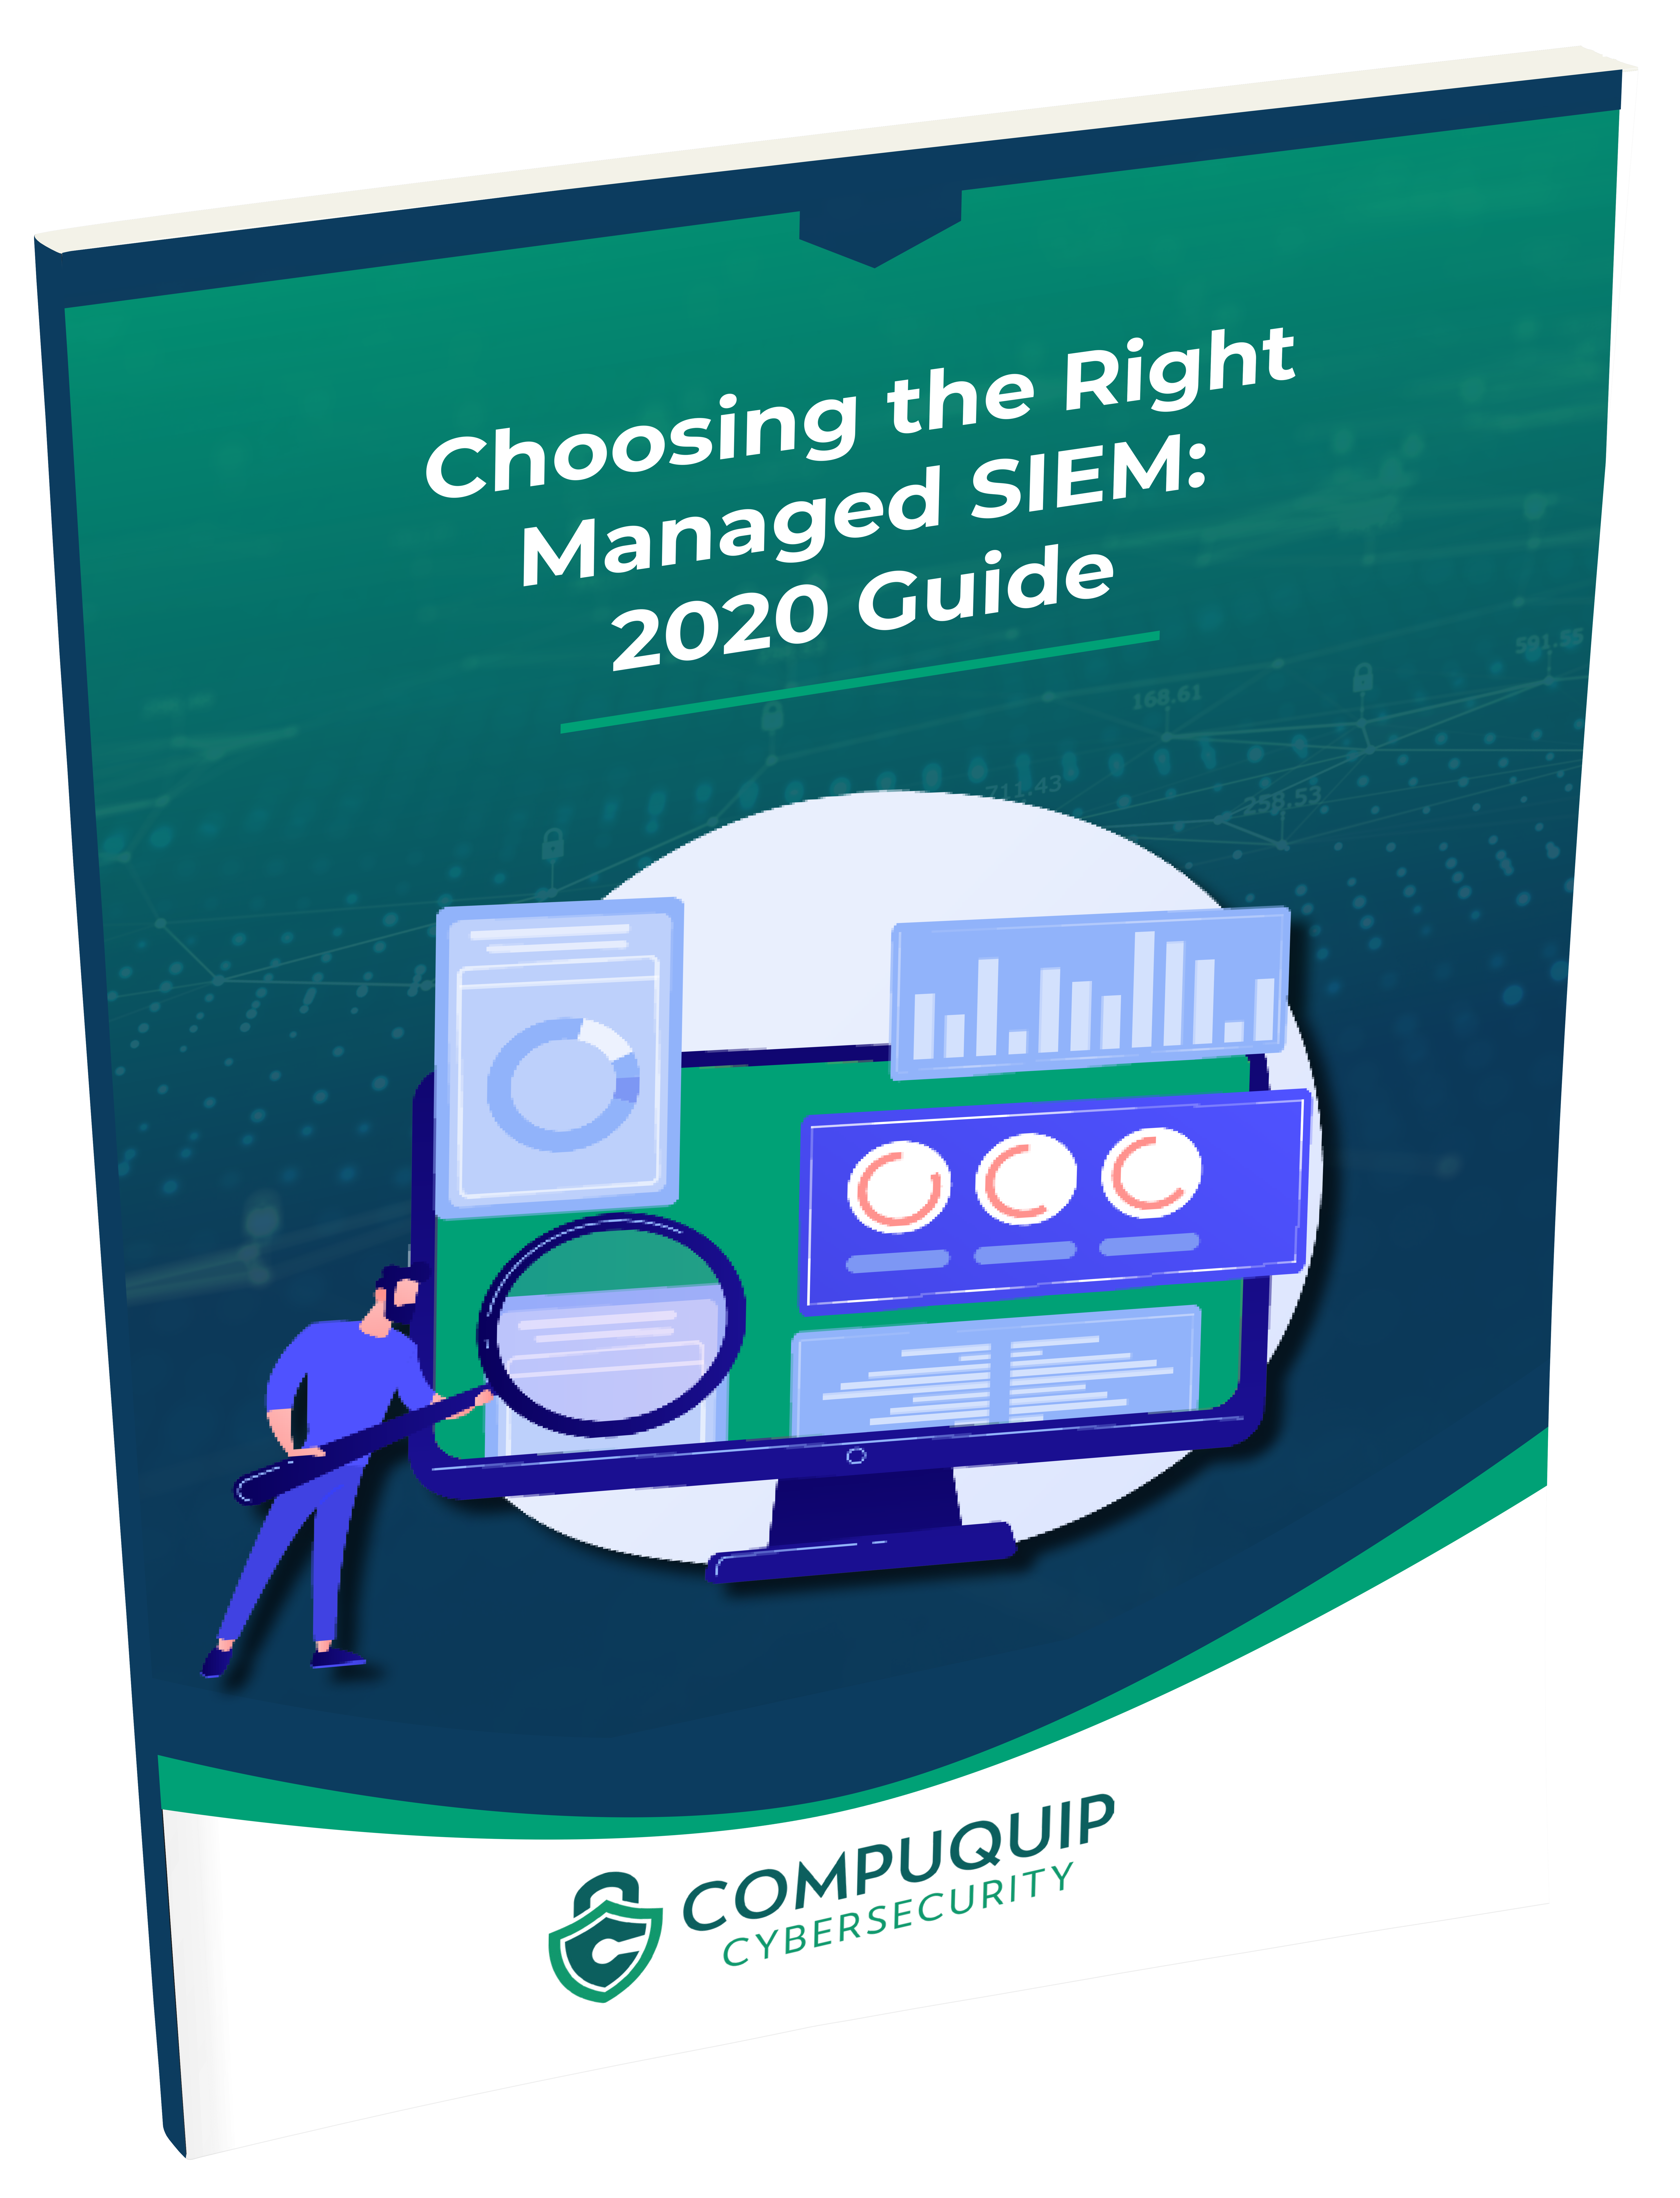 Choosing the Right Managed SIEM: 2020 Guide Cover